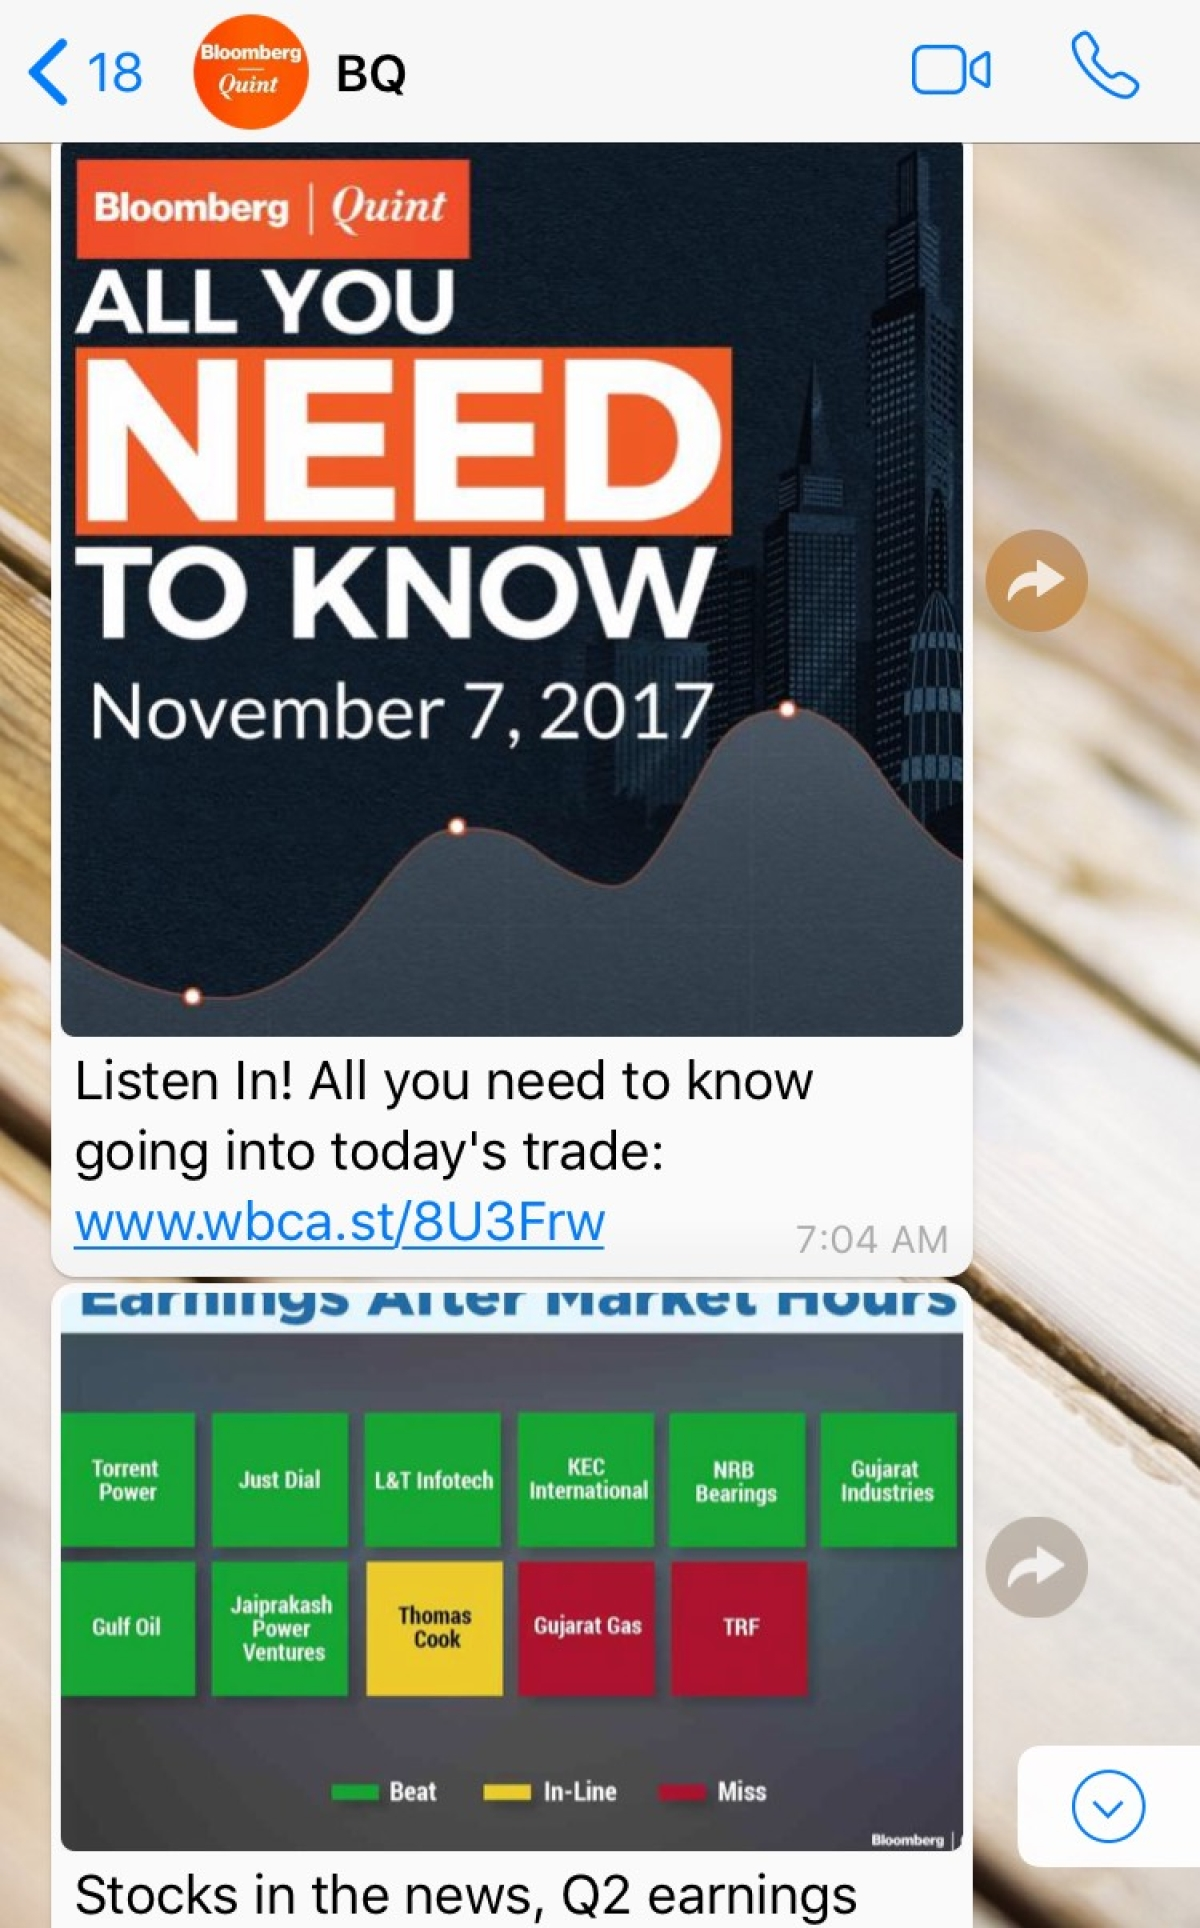 BloombergQuint on WhatsApp: Stay Updated with the Latest News on